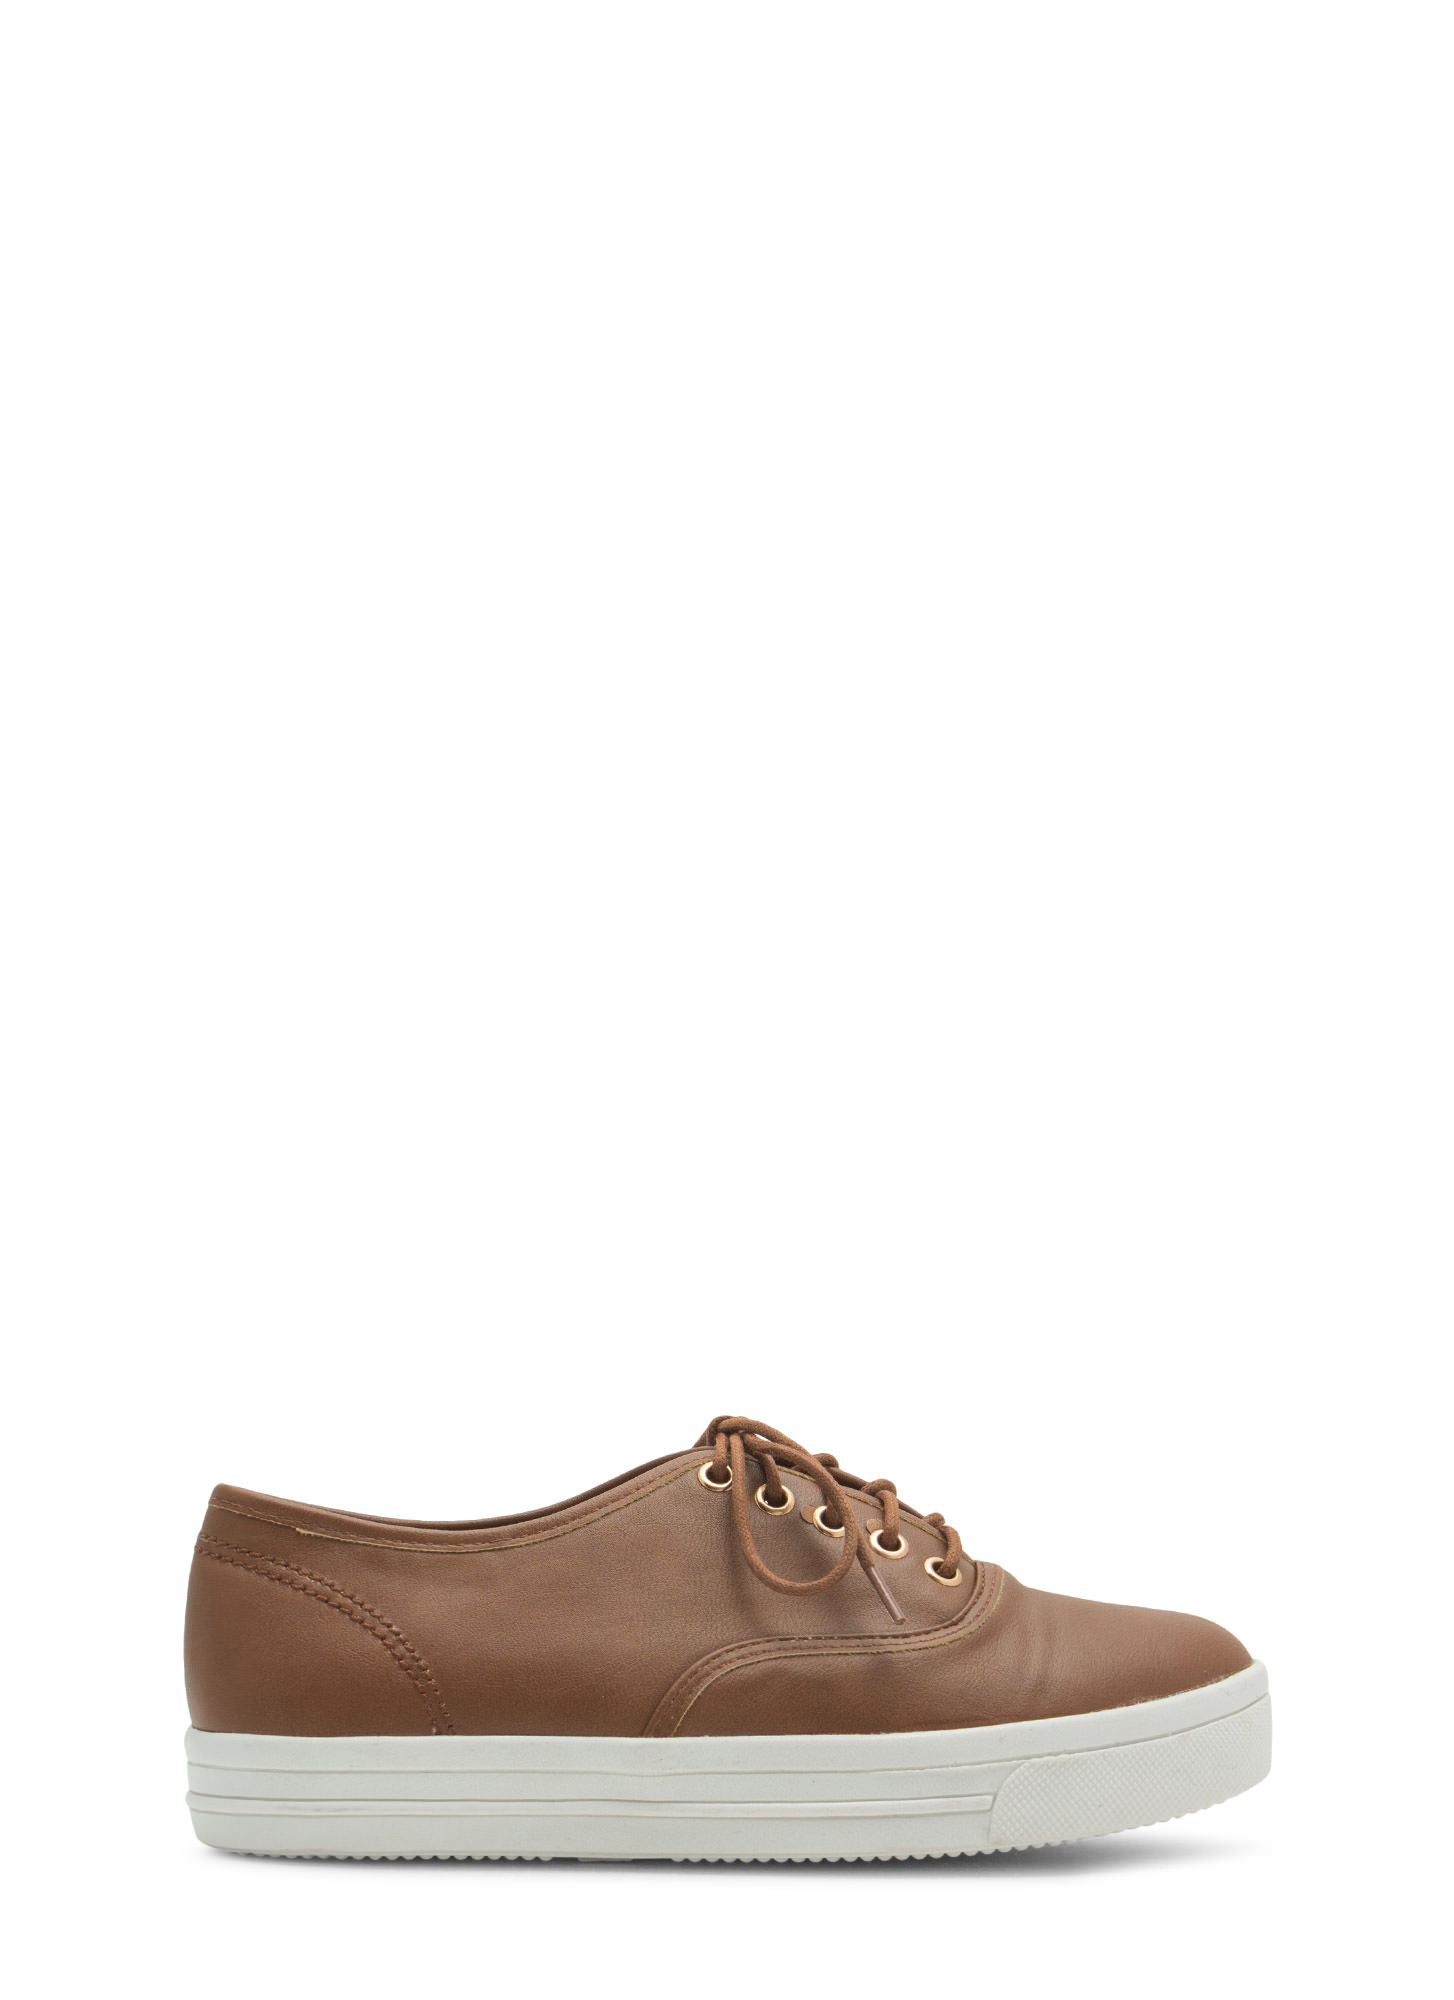 Rock Out Faux Leather Platform Sneakers CHESTNUT